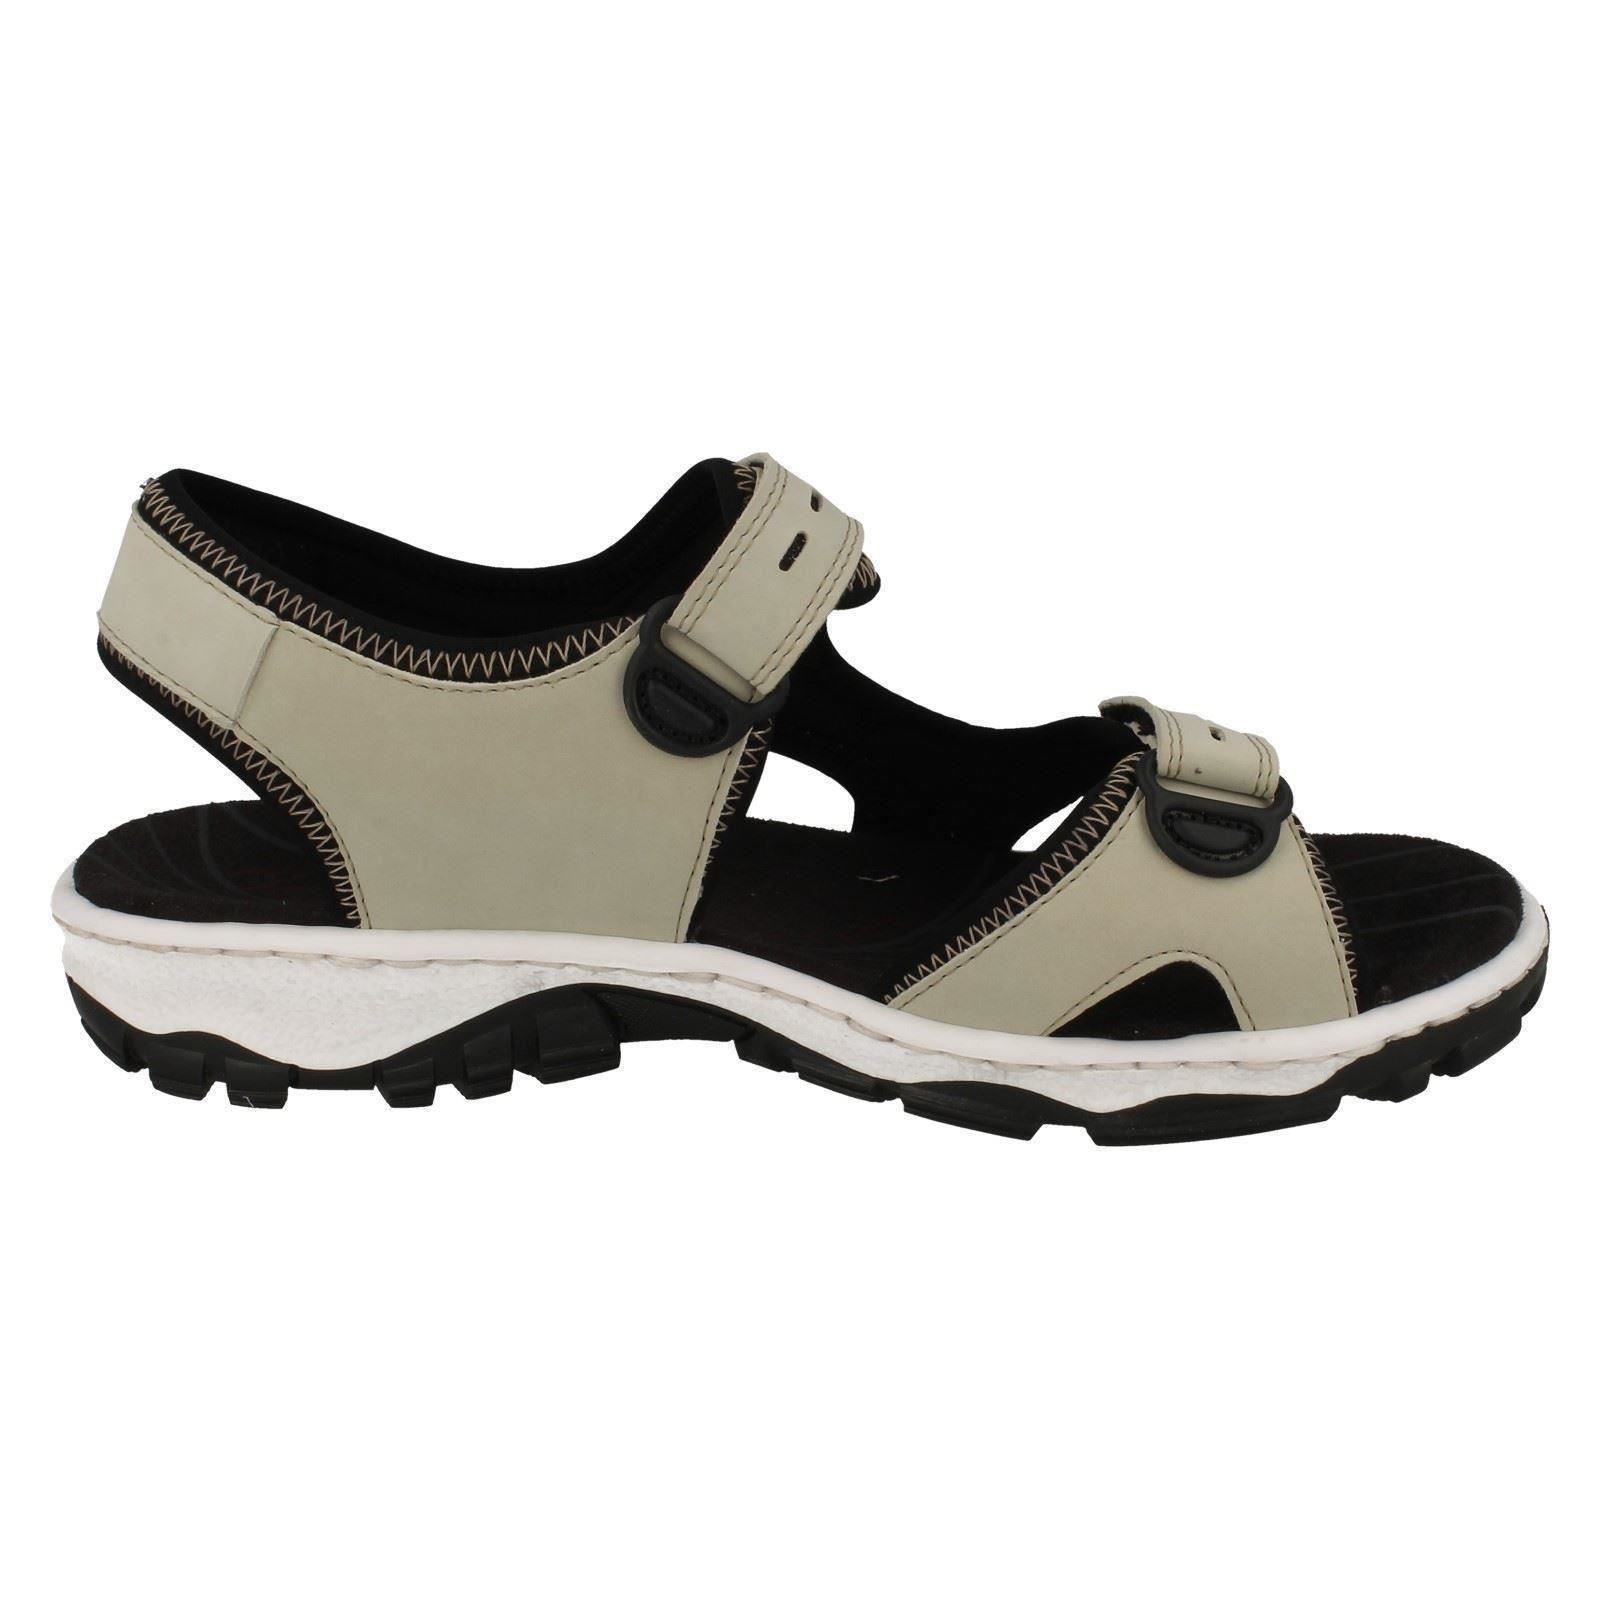 Gentlemen/Ladies Ladies Rieker Sandles Diverse Style-68866 Diverse Sandles new design a good reputation in the world At an affordable price 229169